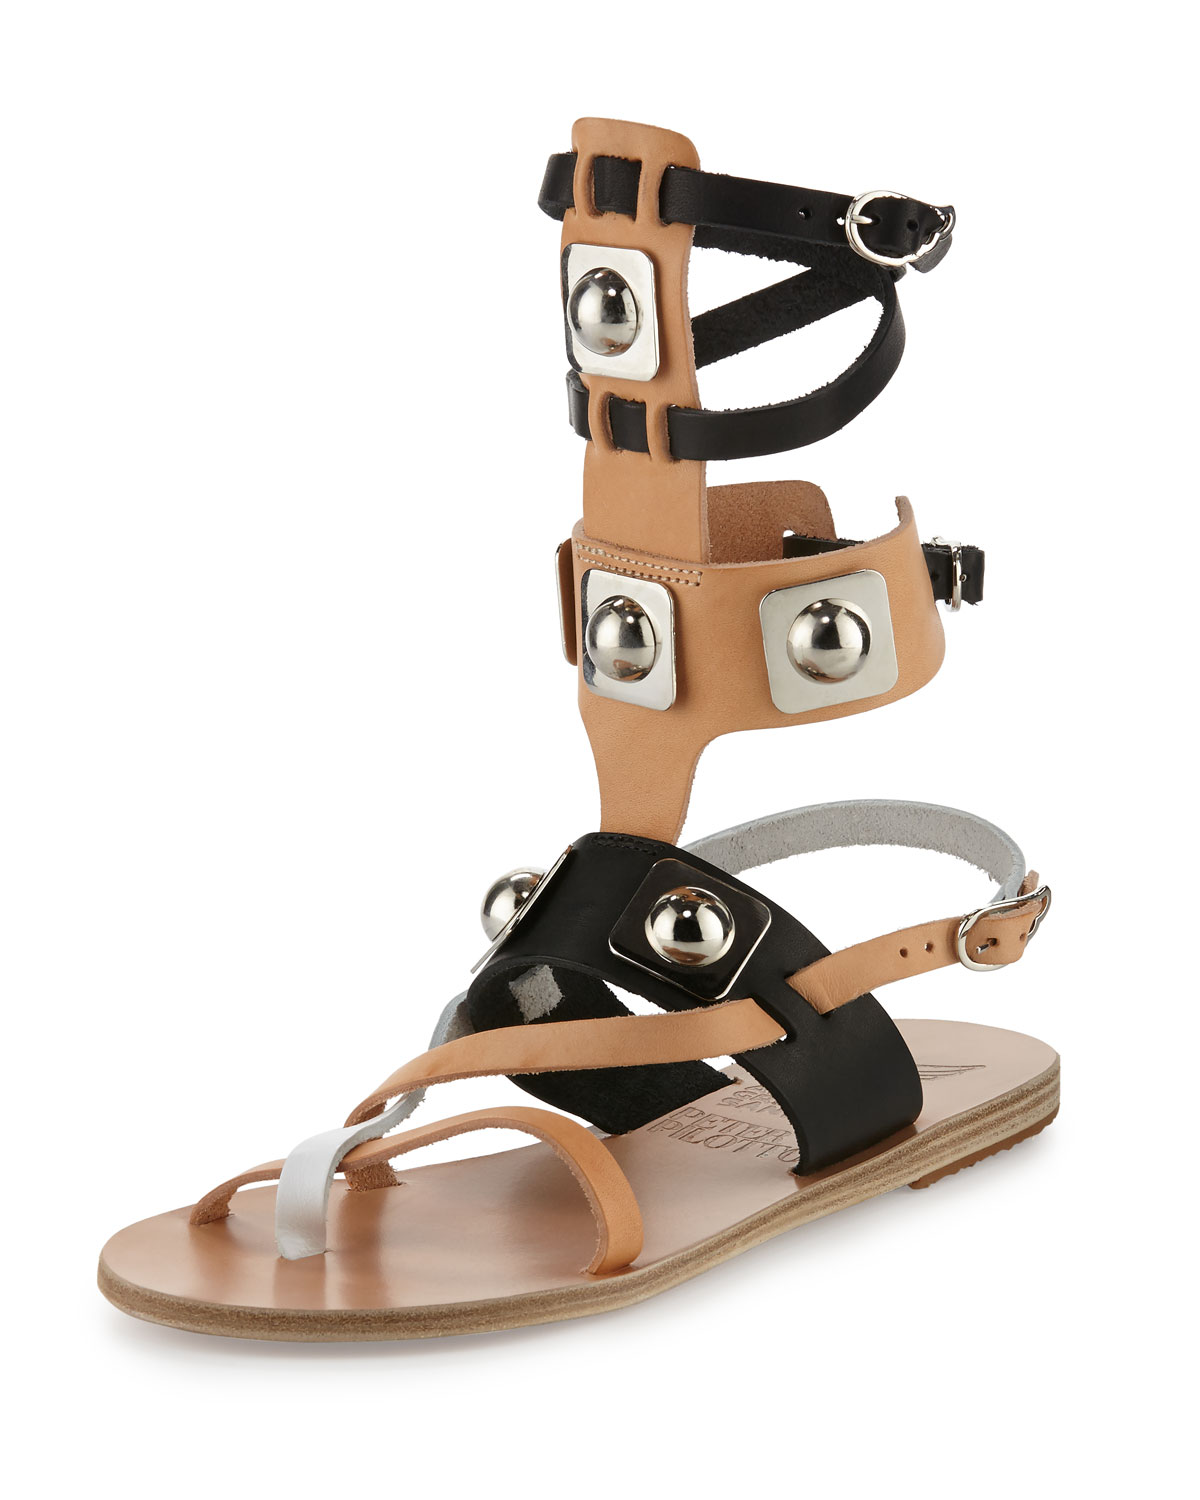 Low Multicolor Leather Gladiator Sandal, Multi/White/Natural/Black